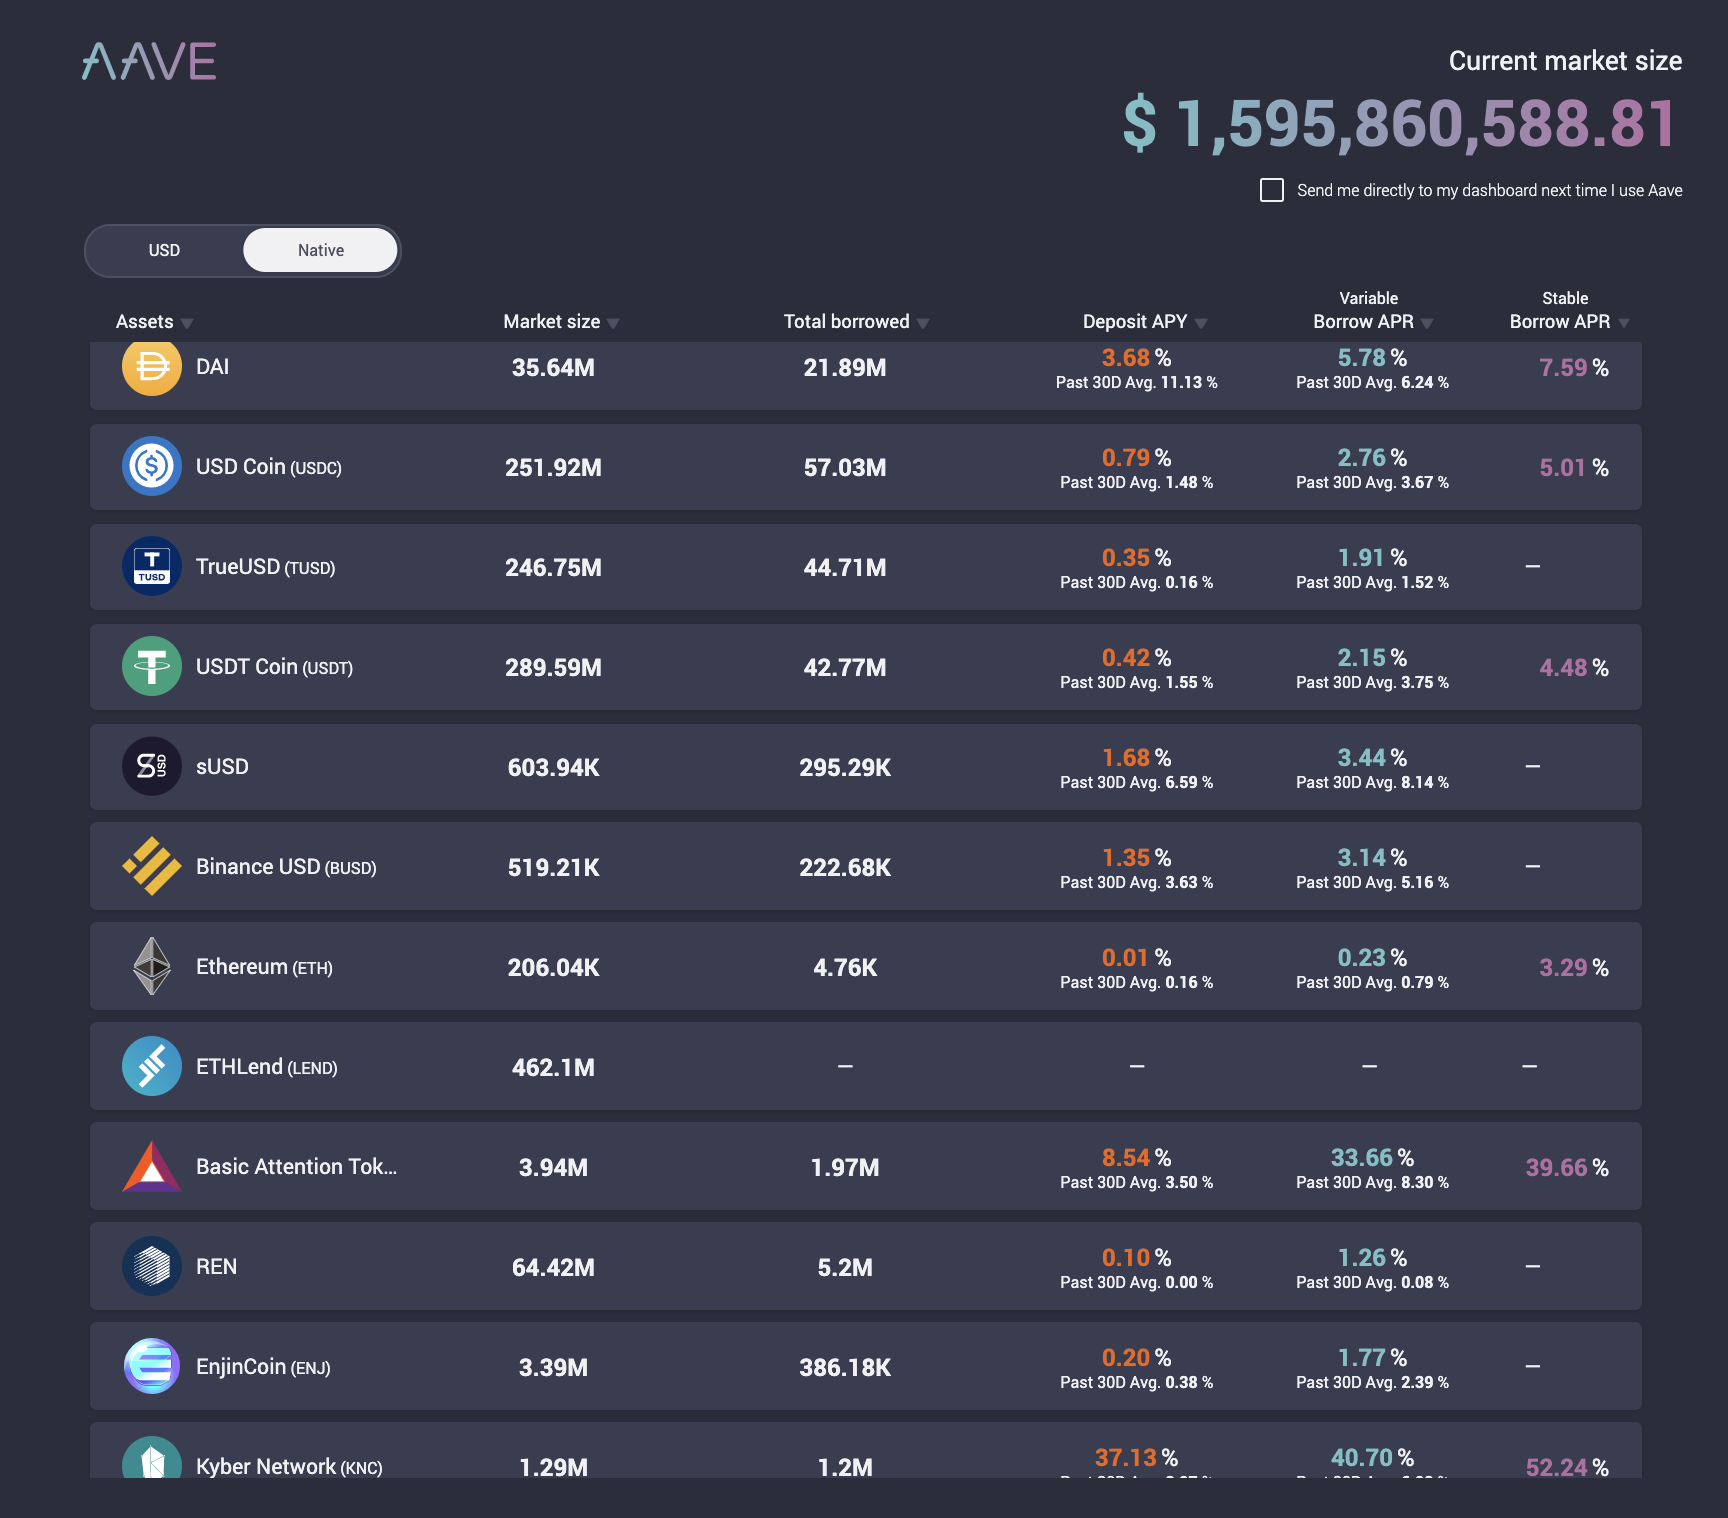 Aave defi dapp, August 2020